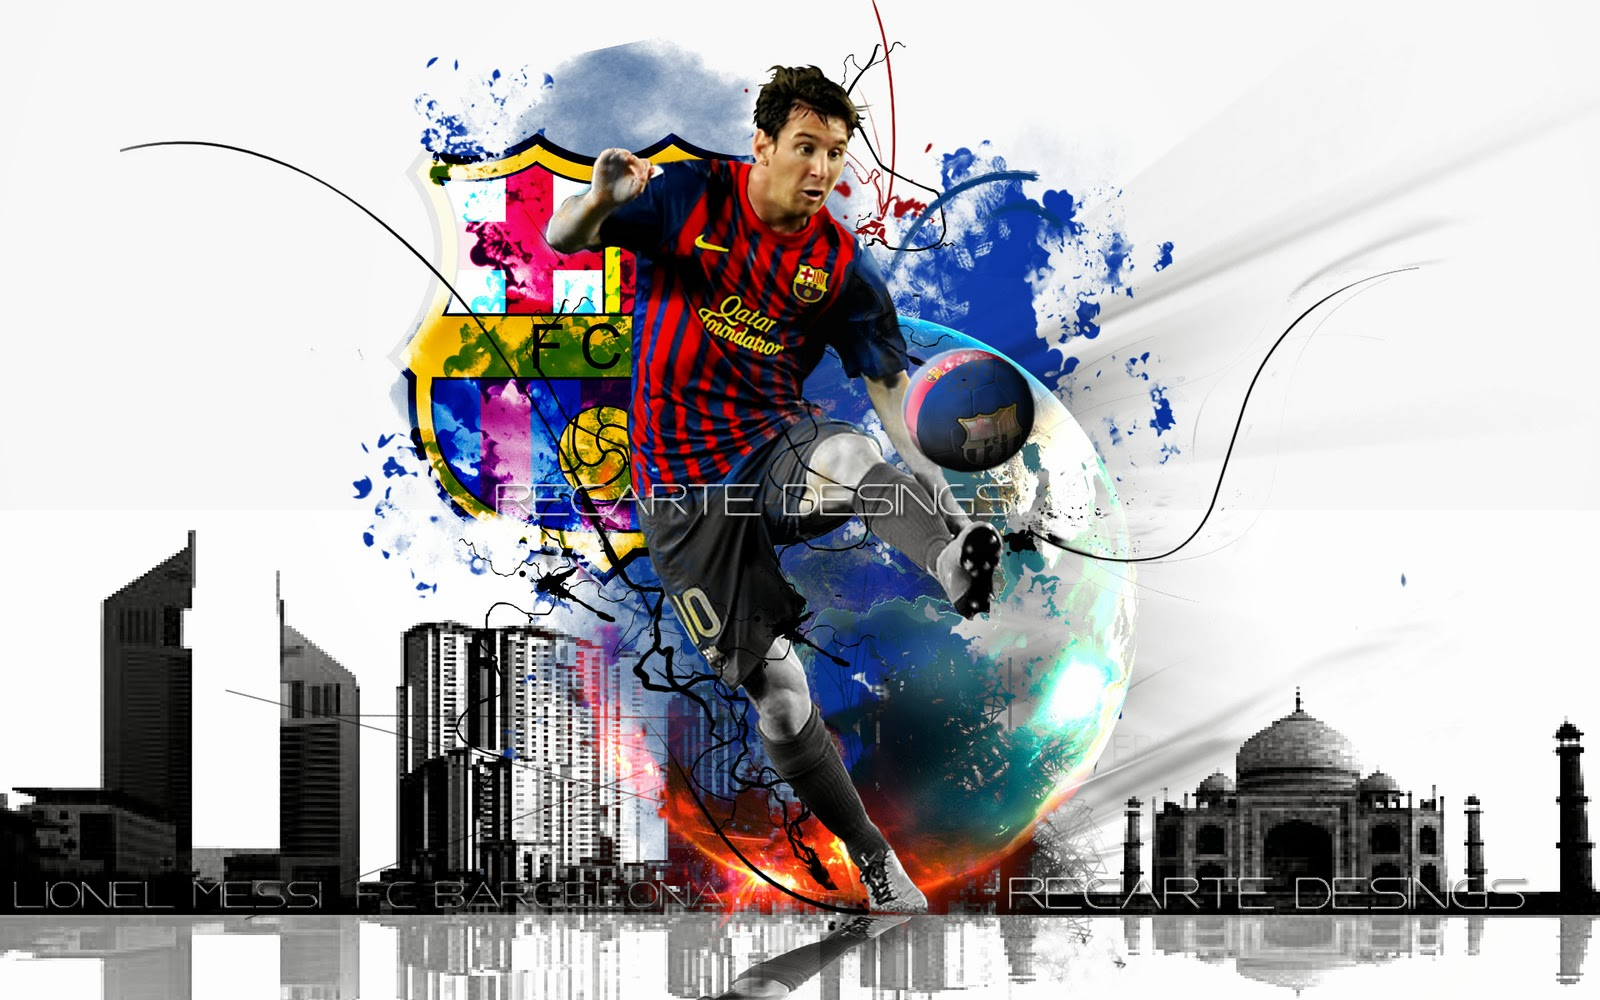 L messi new hd wallpapers 2013 2014 football wallpapers hd l messi new hd wallpapers 2013 2014 voltagebd Choice Image